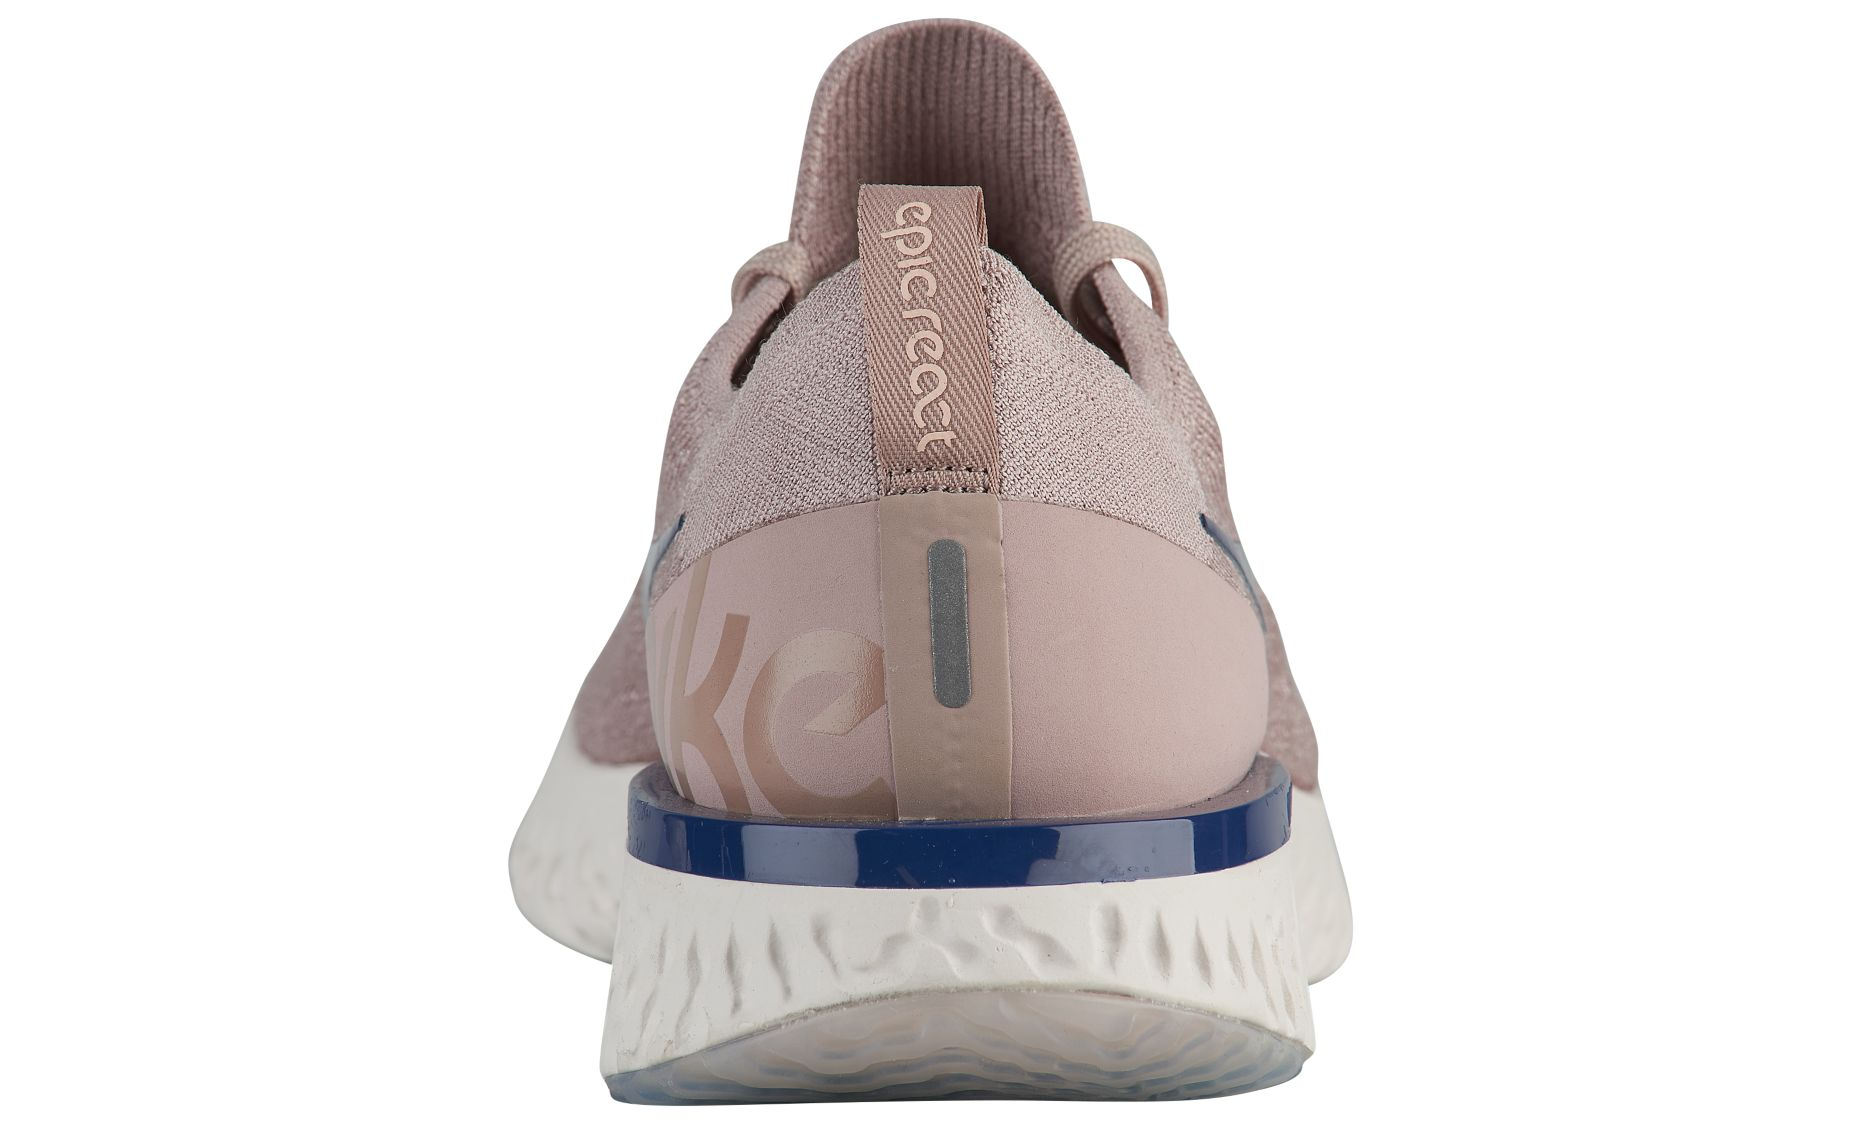 176b45cc96459 NIKE EPIC REACT FLYKNIT DIFFUSED TAUPE   BLUE VOID - PHANTOM 4 ...